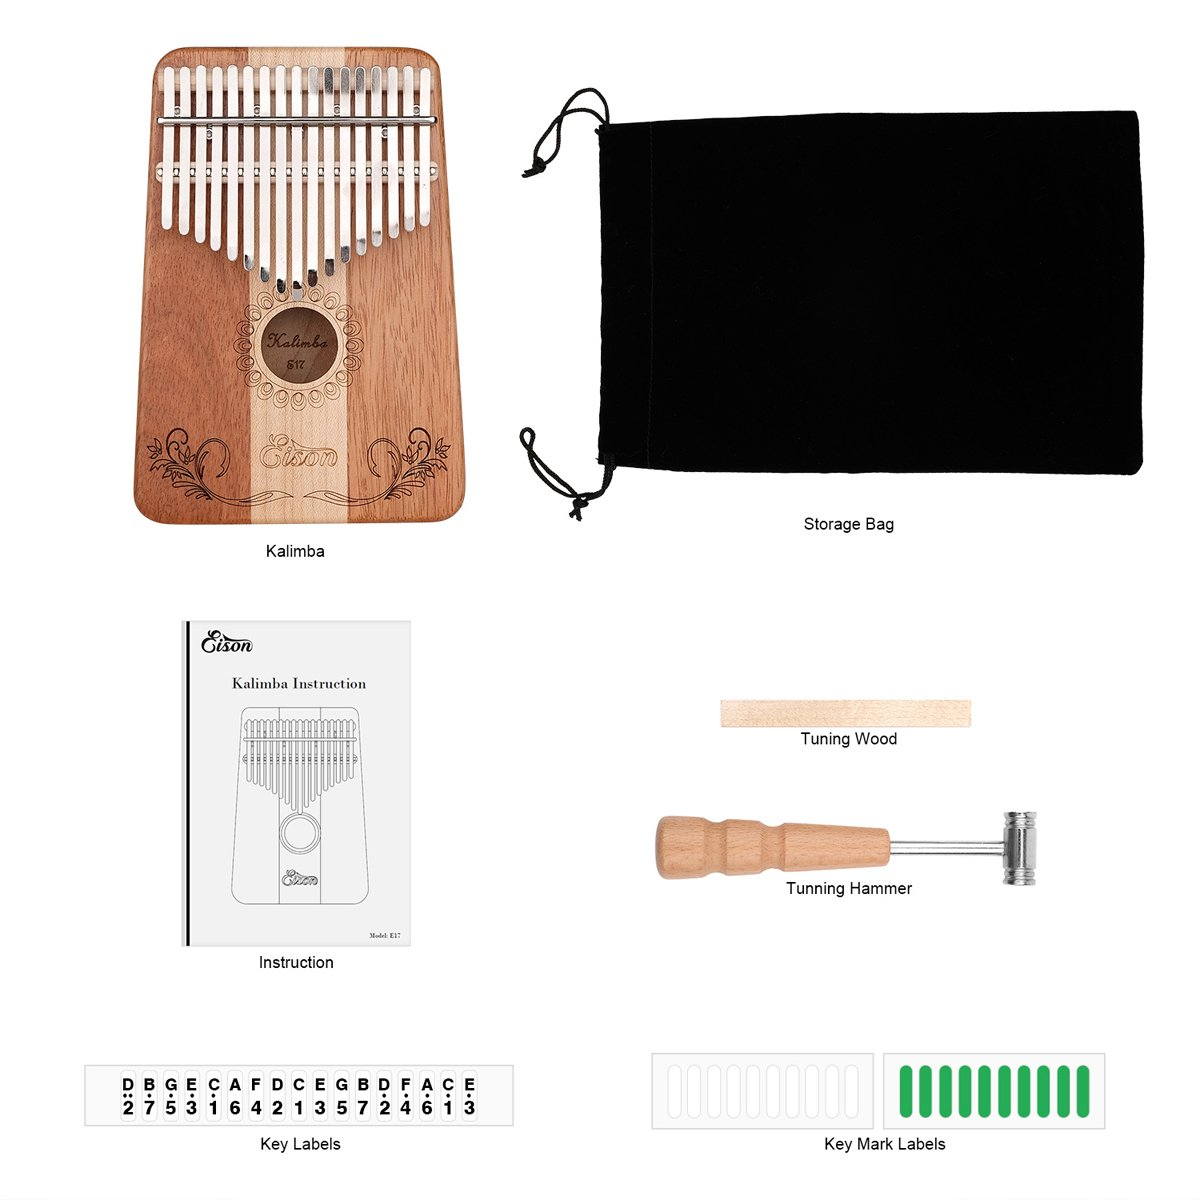 Kalimba,Eison Kalimba Thumb Piano Finger Piano 17 keys with Key Locking System with Instruction and Tune Hammer, Solid Wood Mahogany & Maple Body- Best Gift for Music Fans Kids Adults,E-17 by Eison (Image #6)